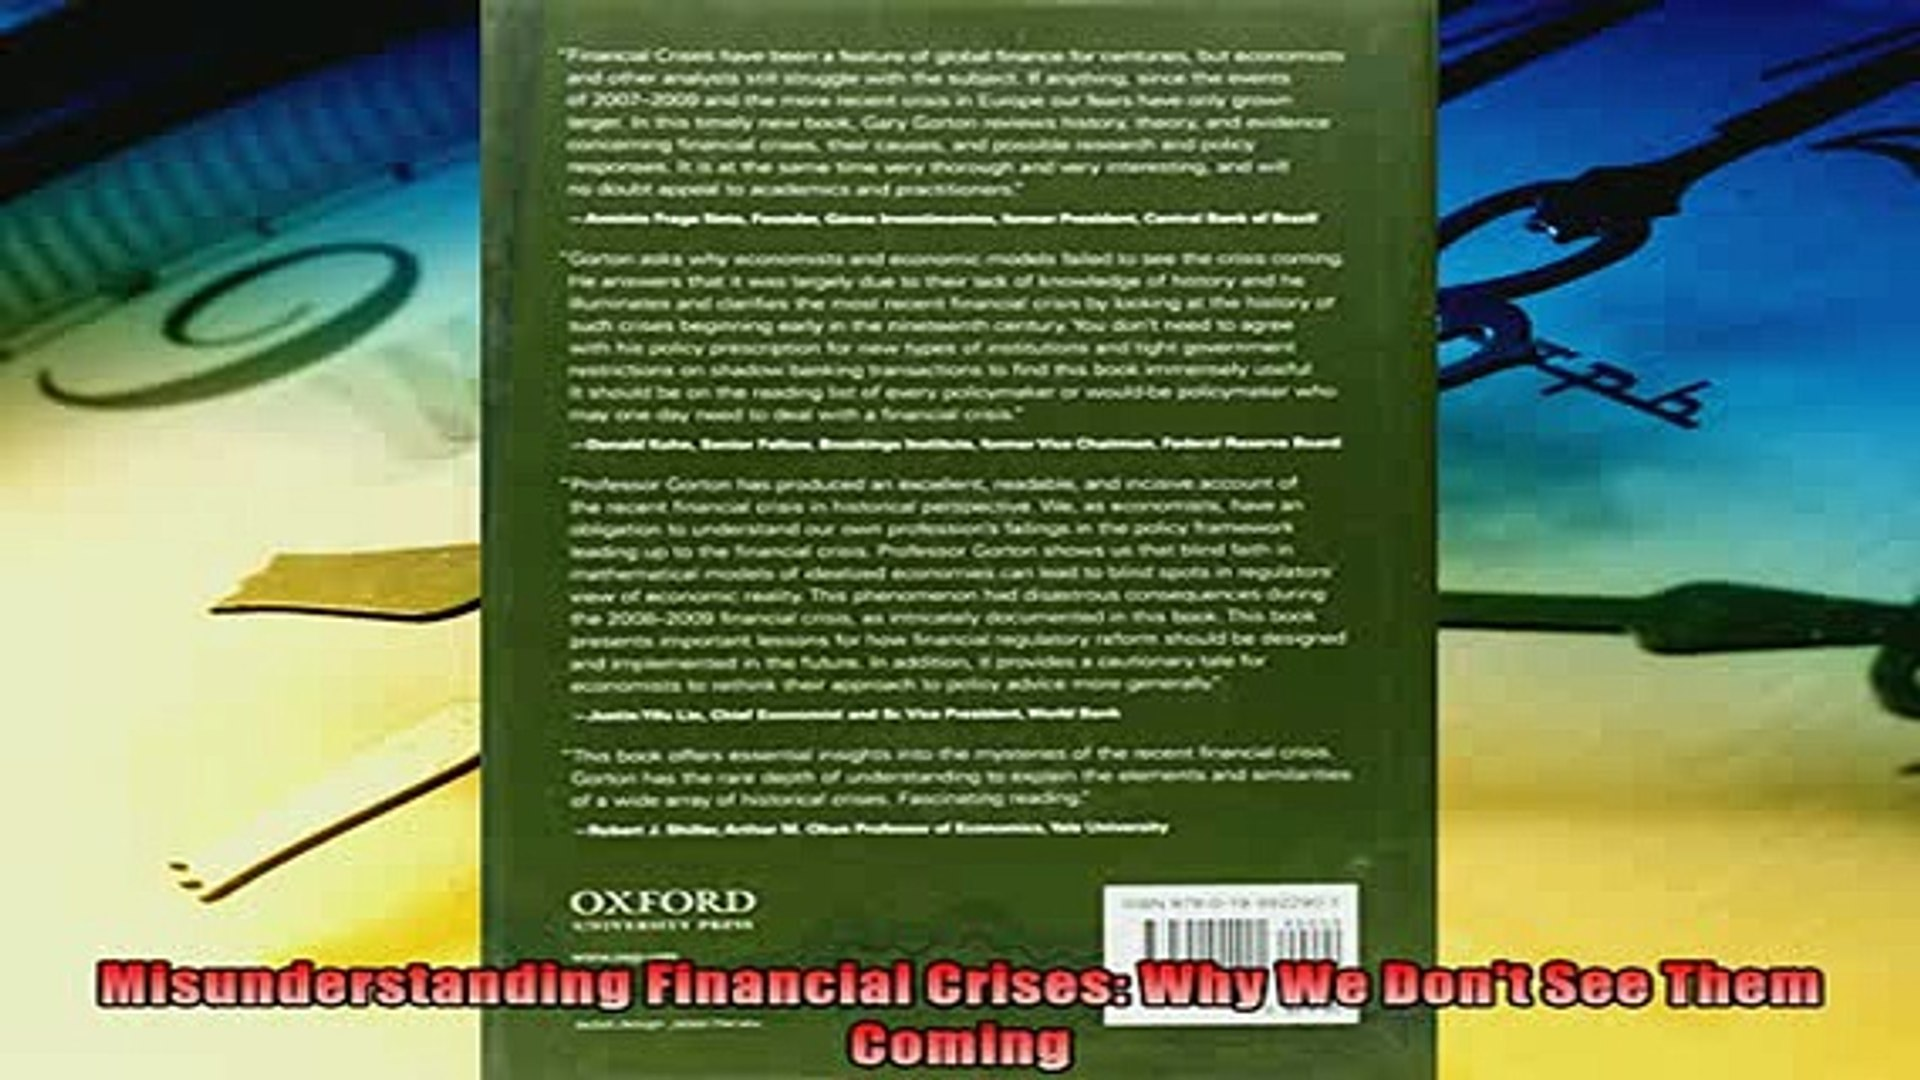 Misunderstanding Financial Crises Why We Dont See Them Coming